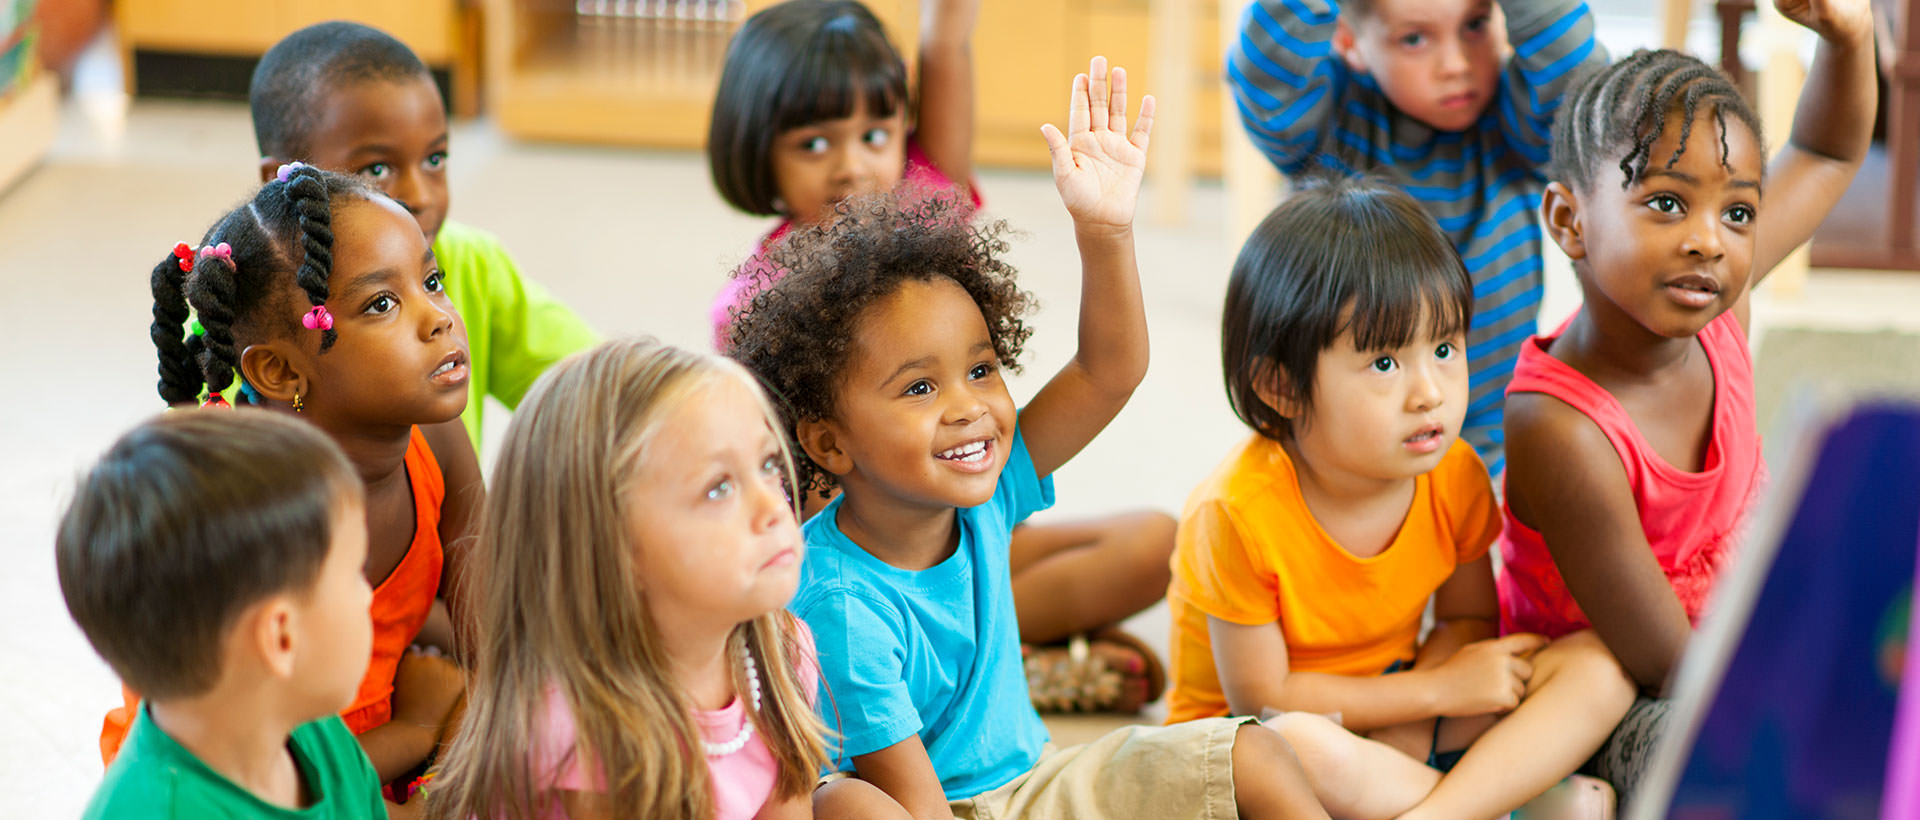 Kids waiting to be called on in class